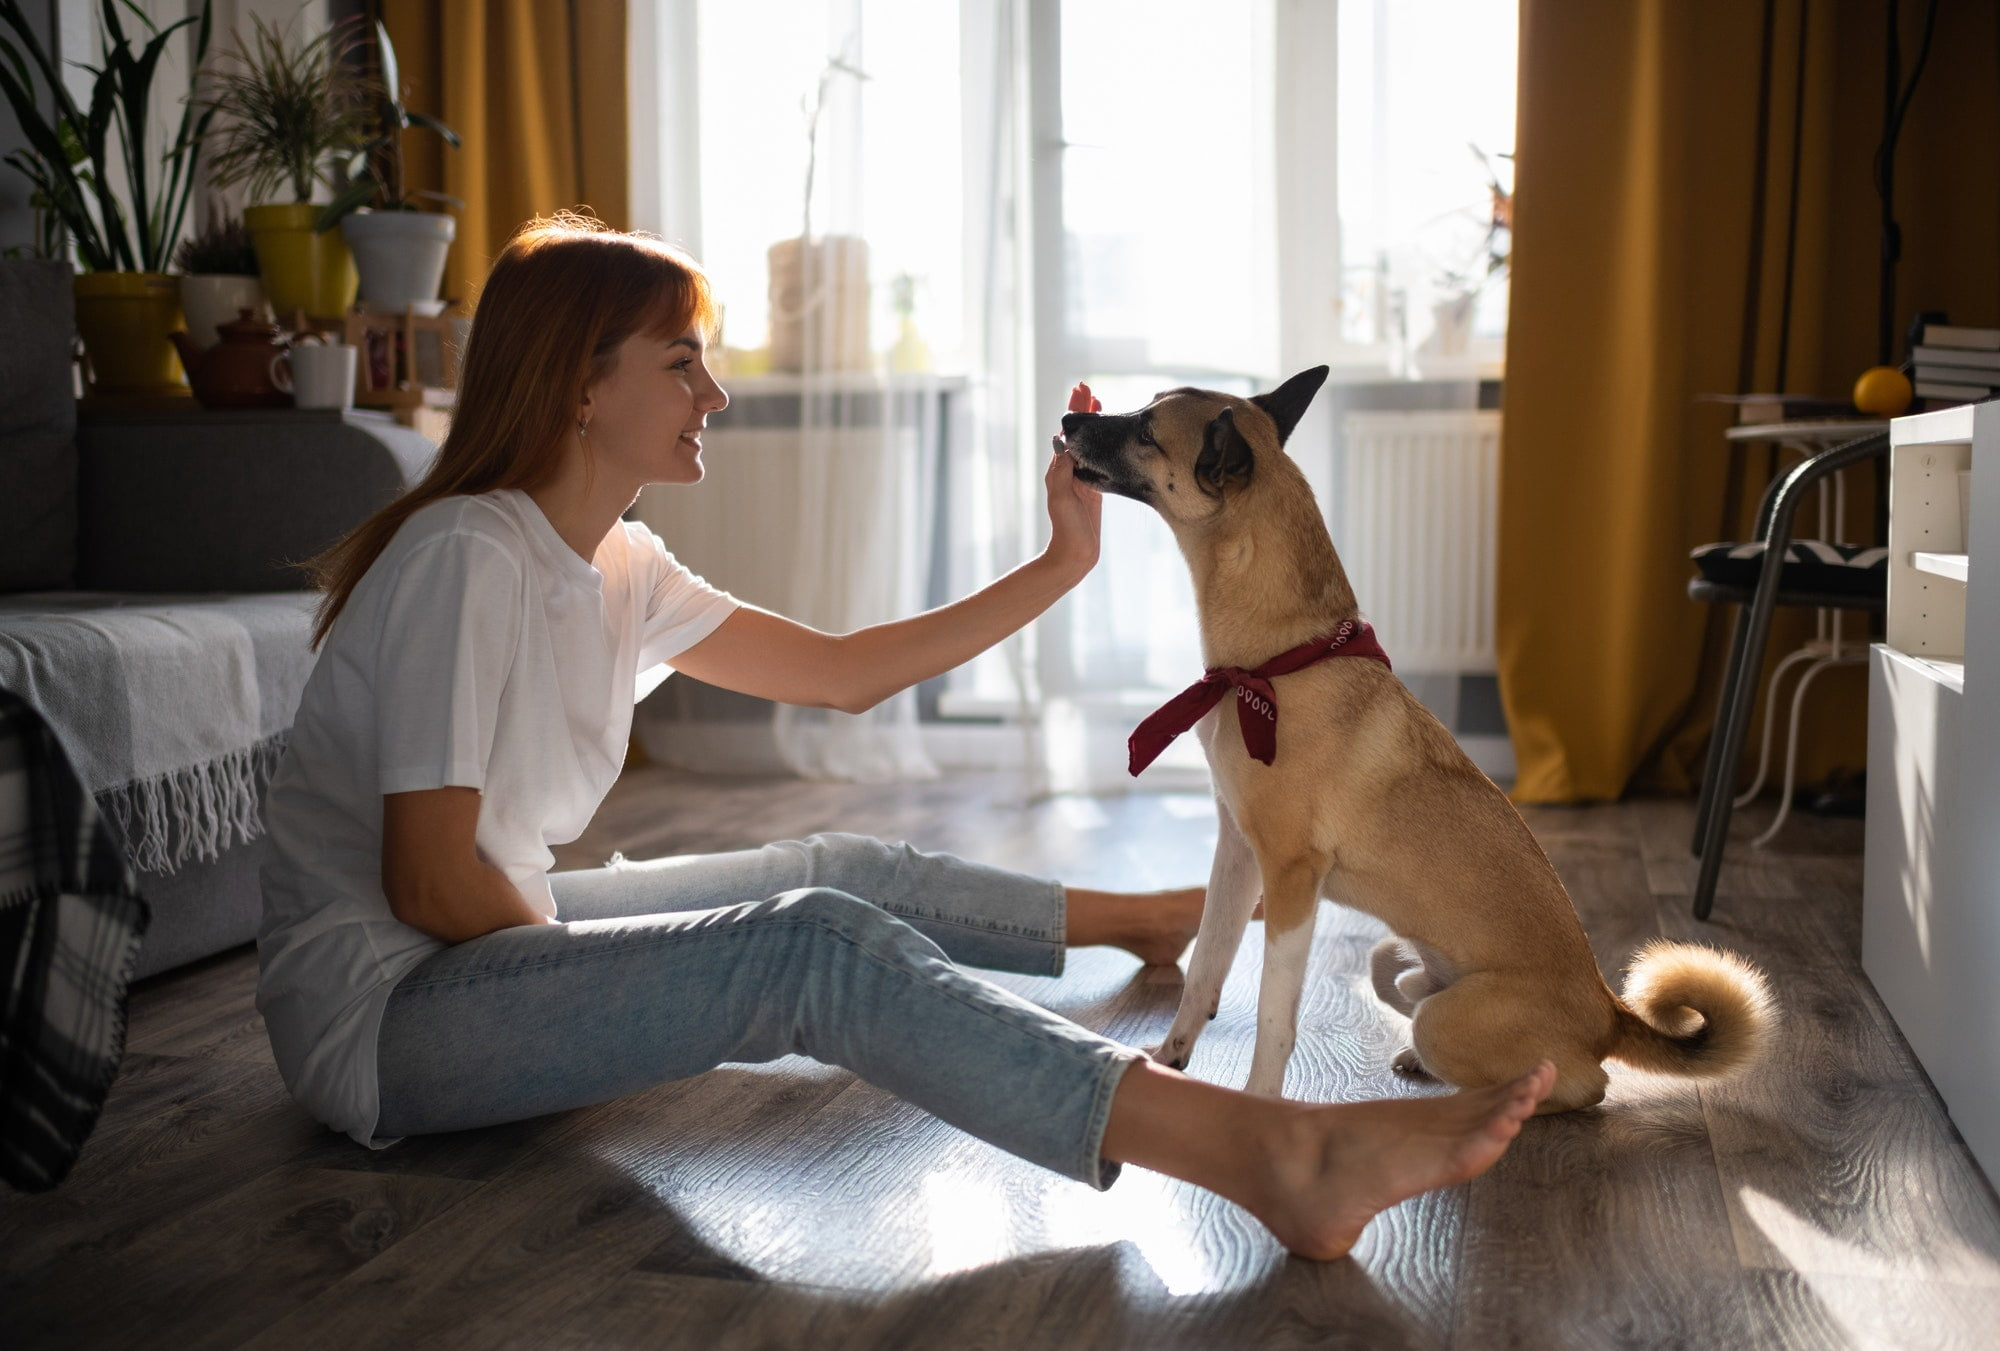 Smiling woman rewarding dog for trick